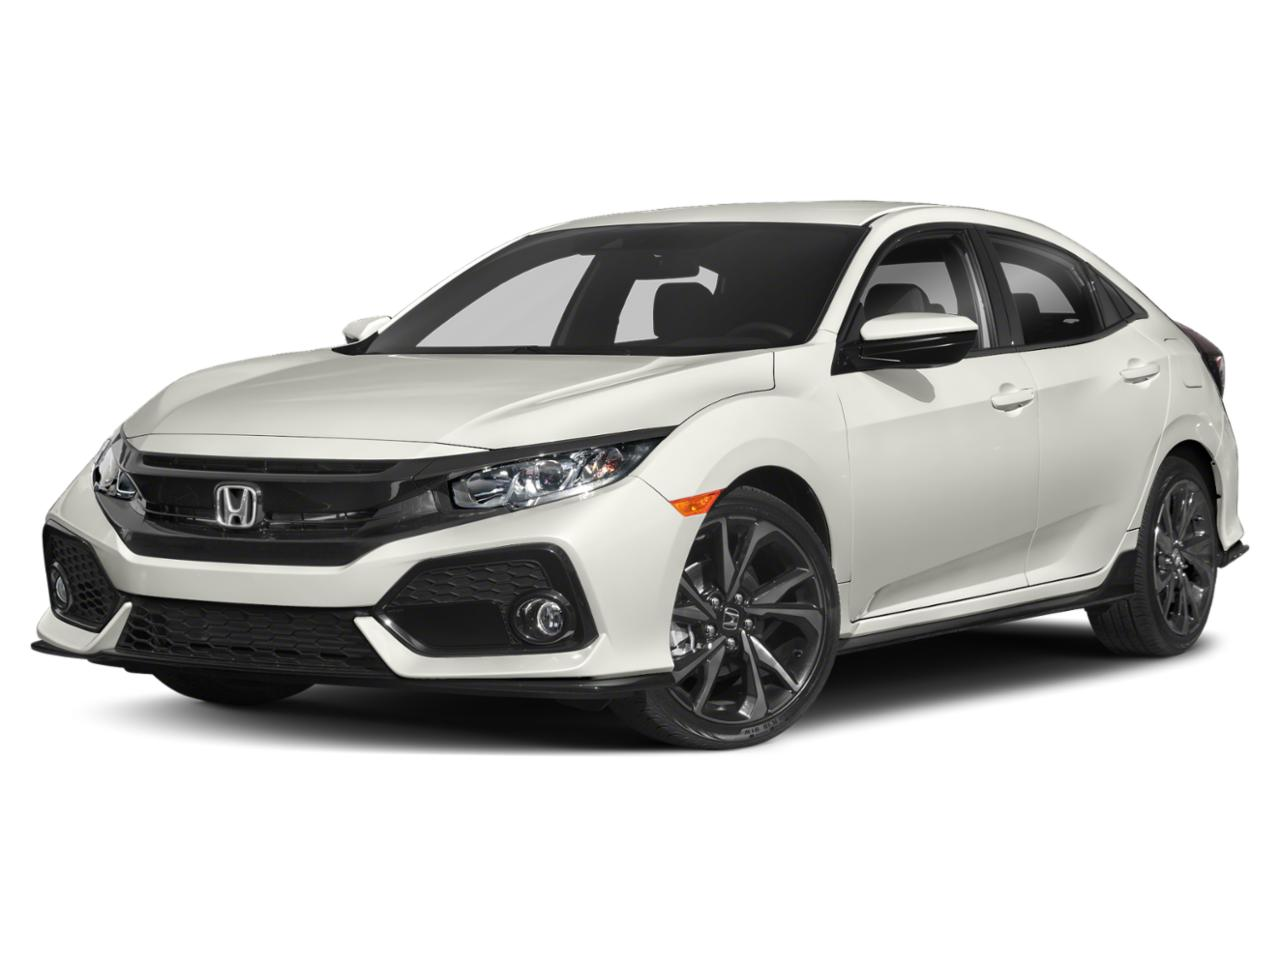 2019 Honda Civic Hatchback Vehicle Photo in Plainfield, IL 60586